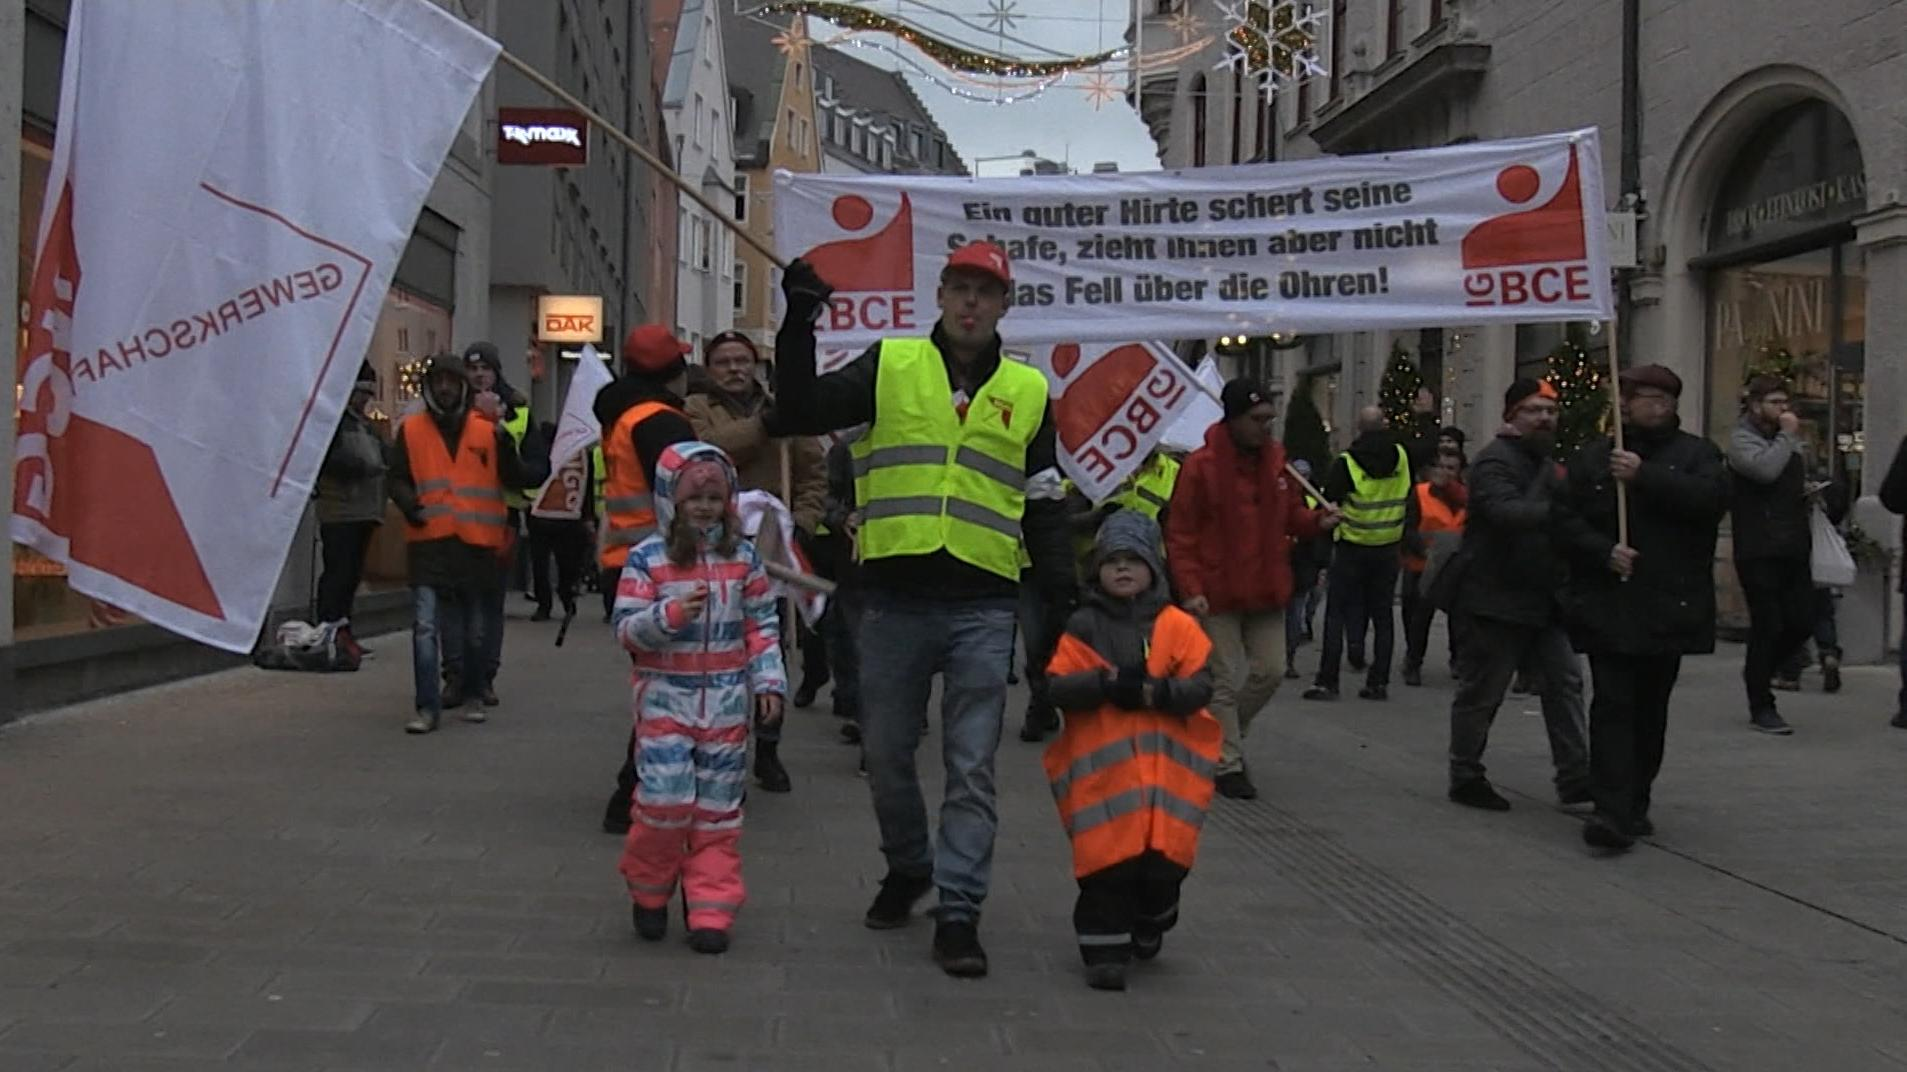 Demonstration in der Augsburg Innenstadt